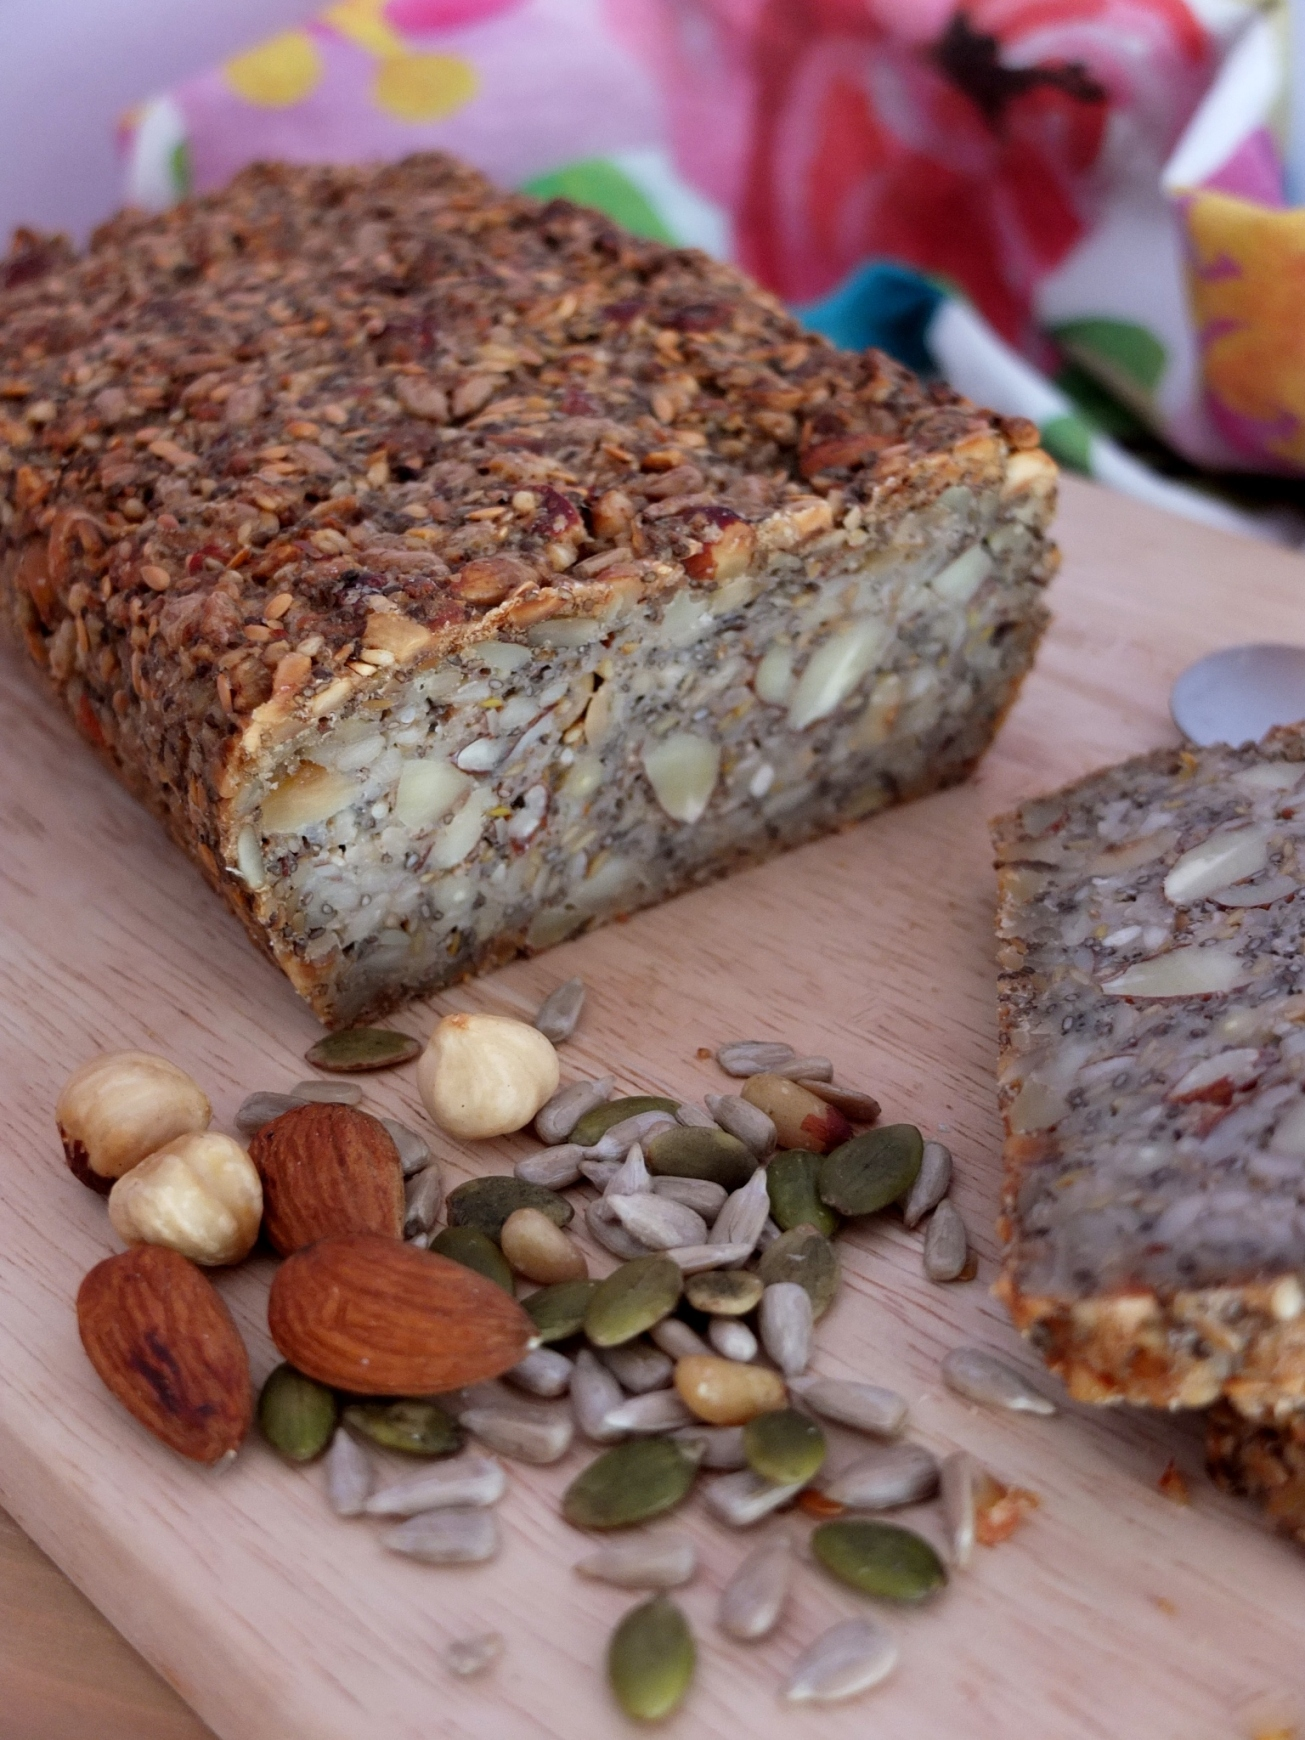 Gluten-free superfood seed and nut bread